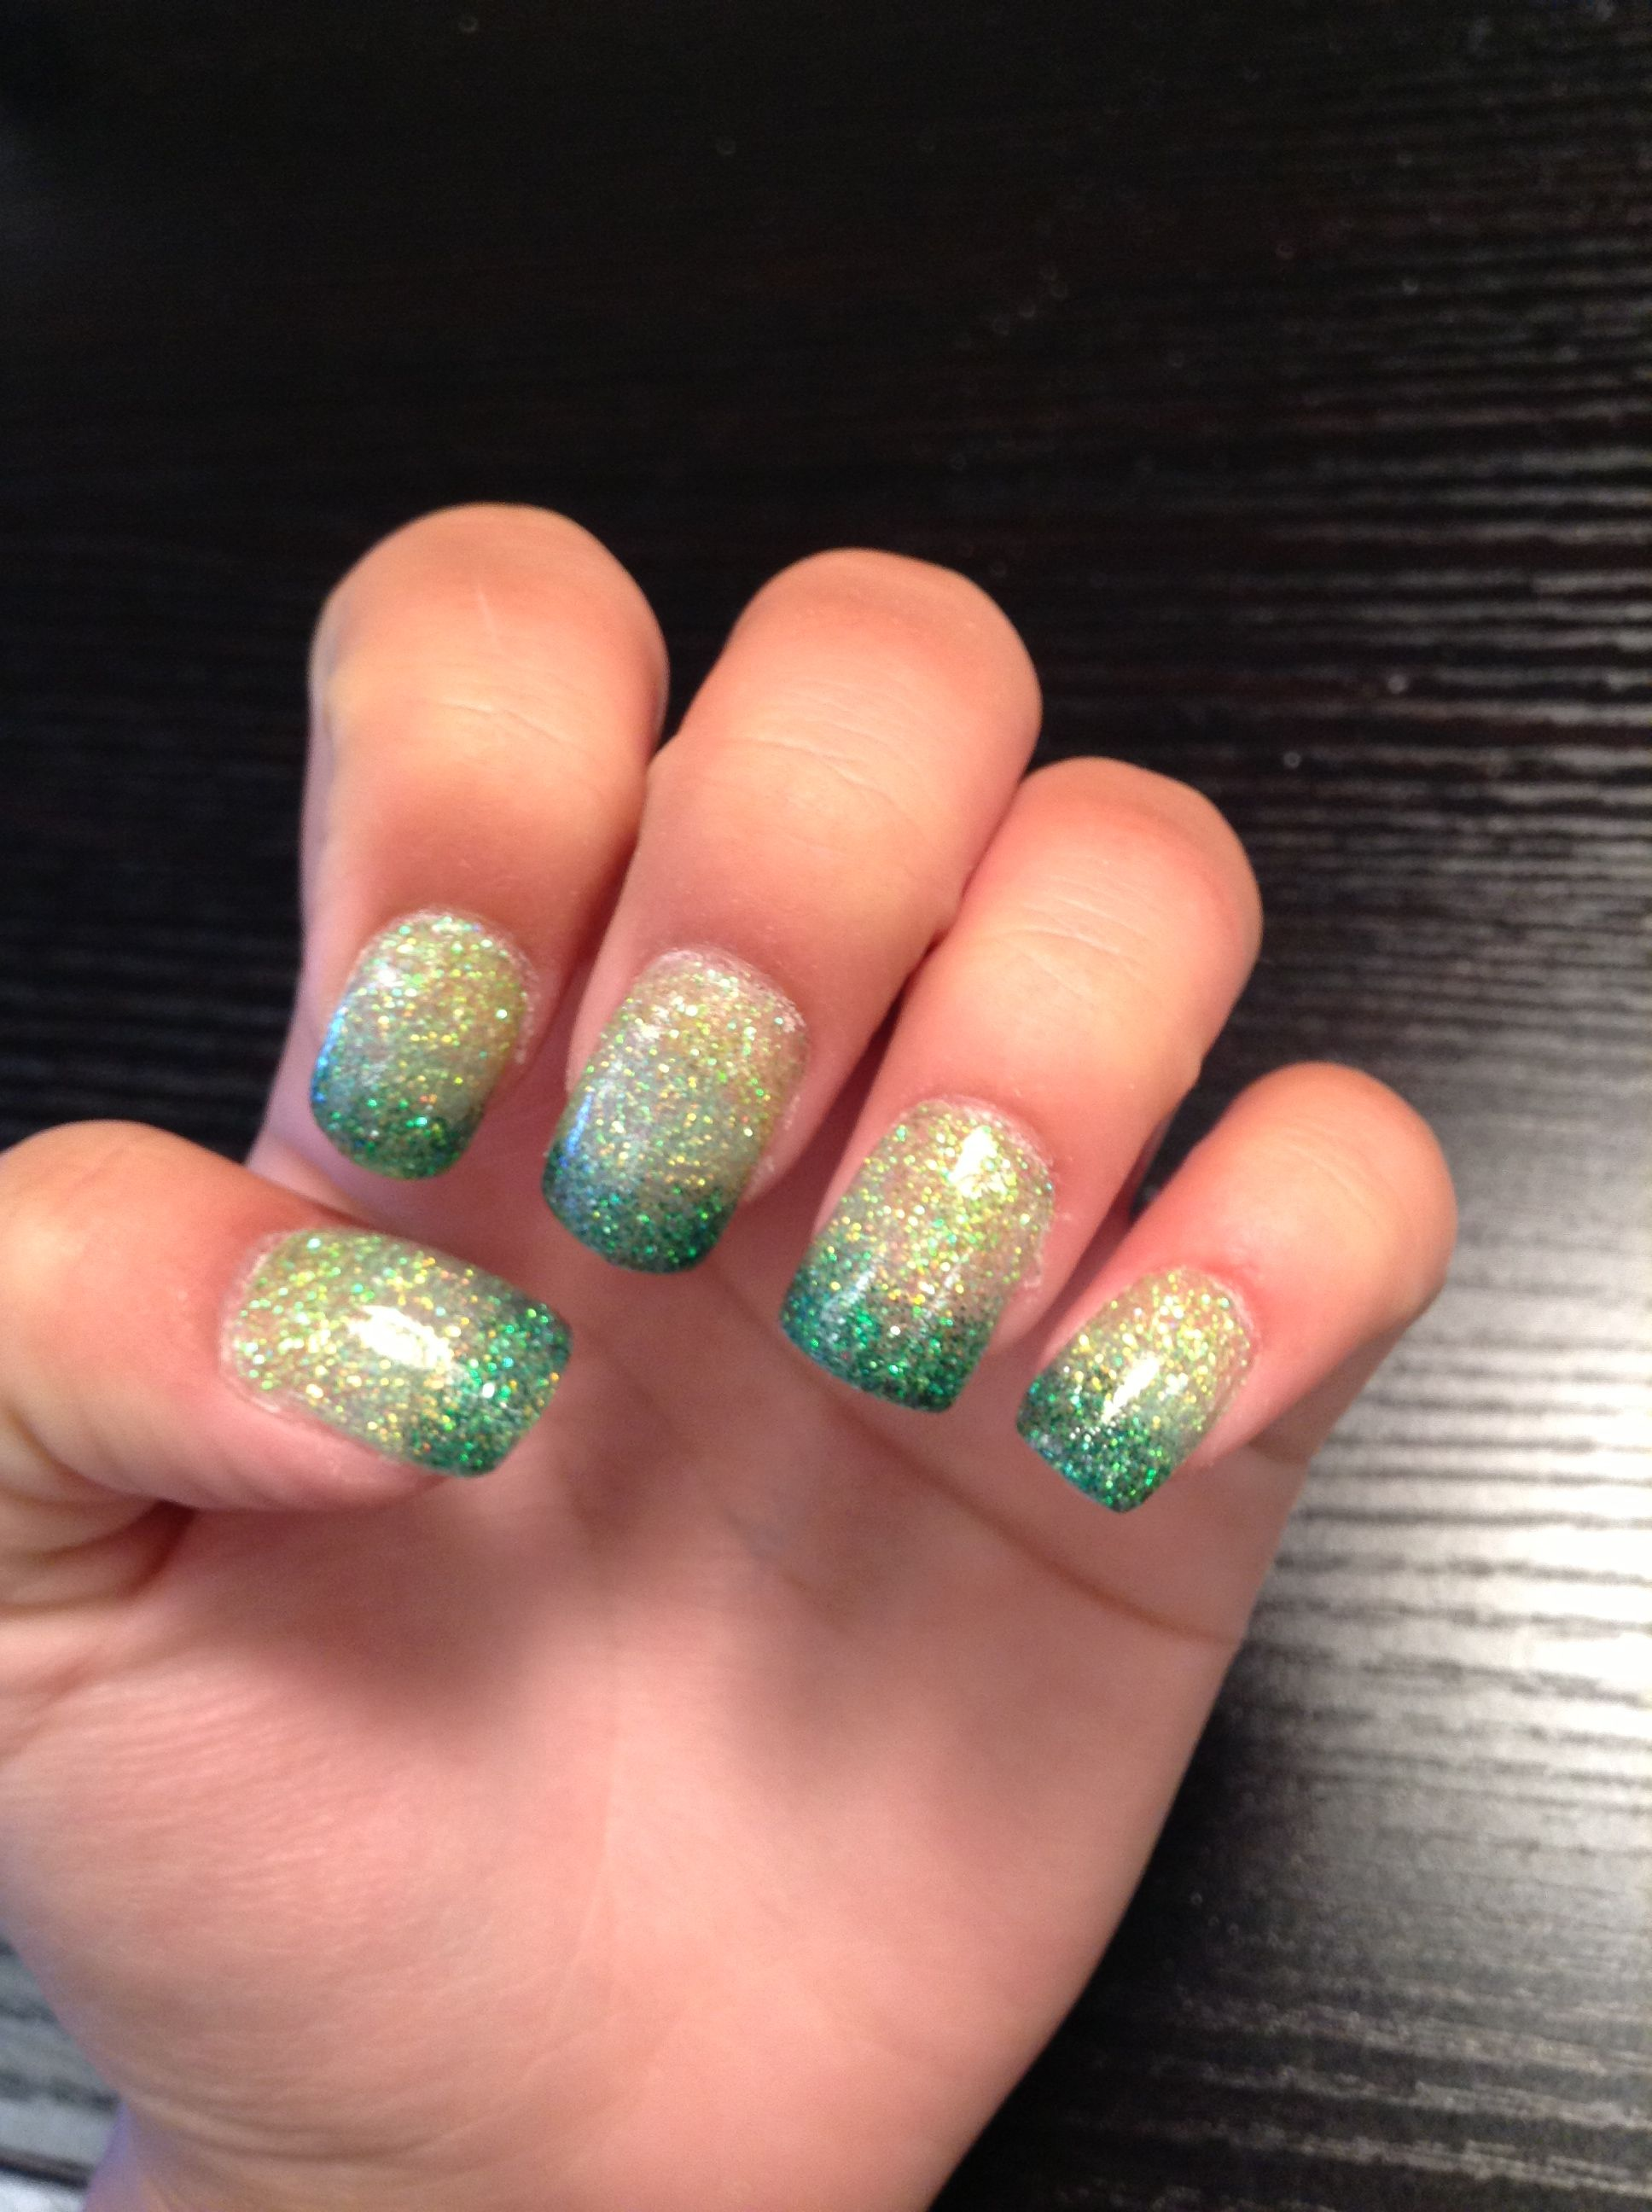 tinkerbell inspired green ombré acrylic nails | The only reason I ...